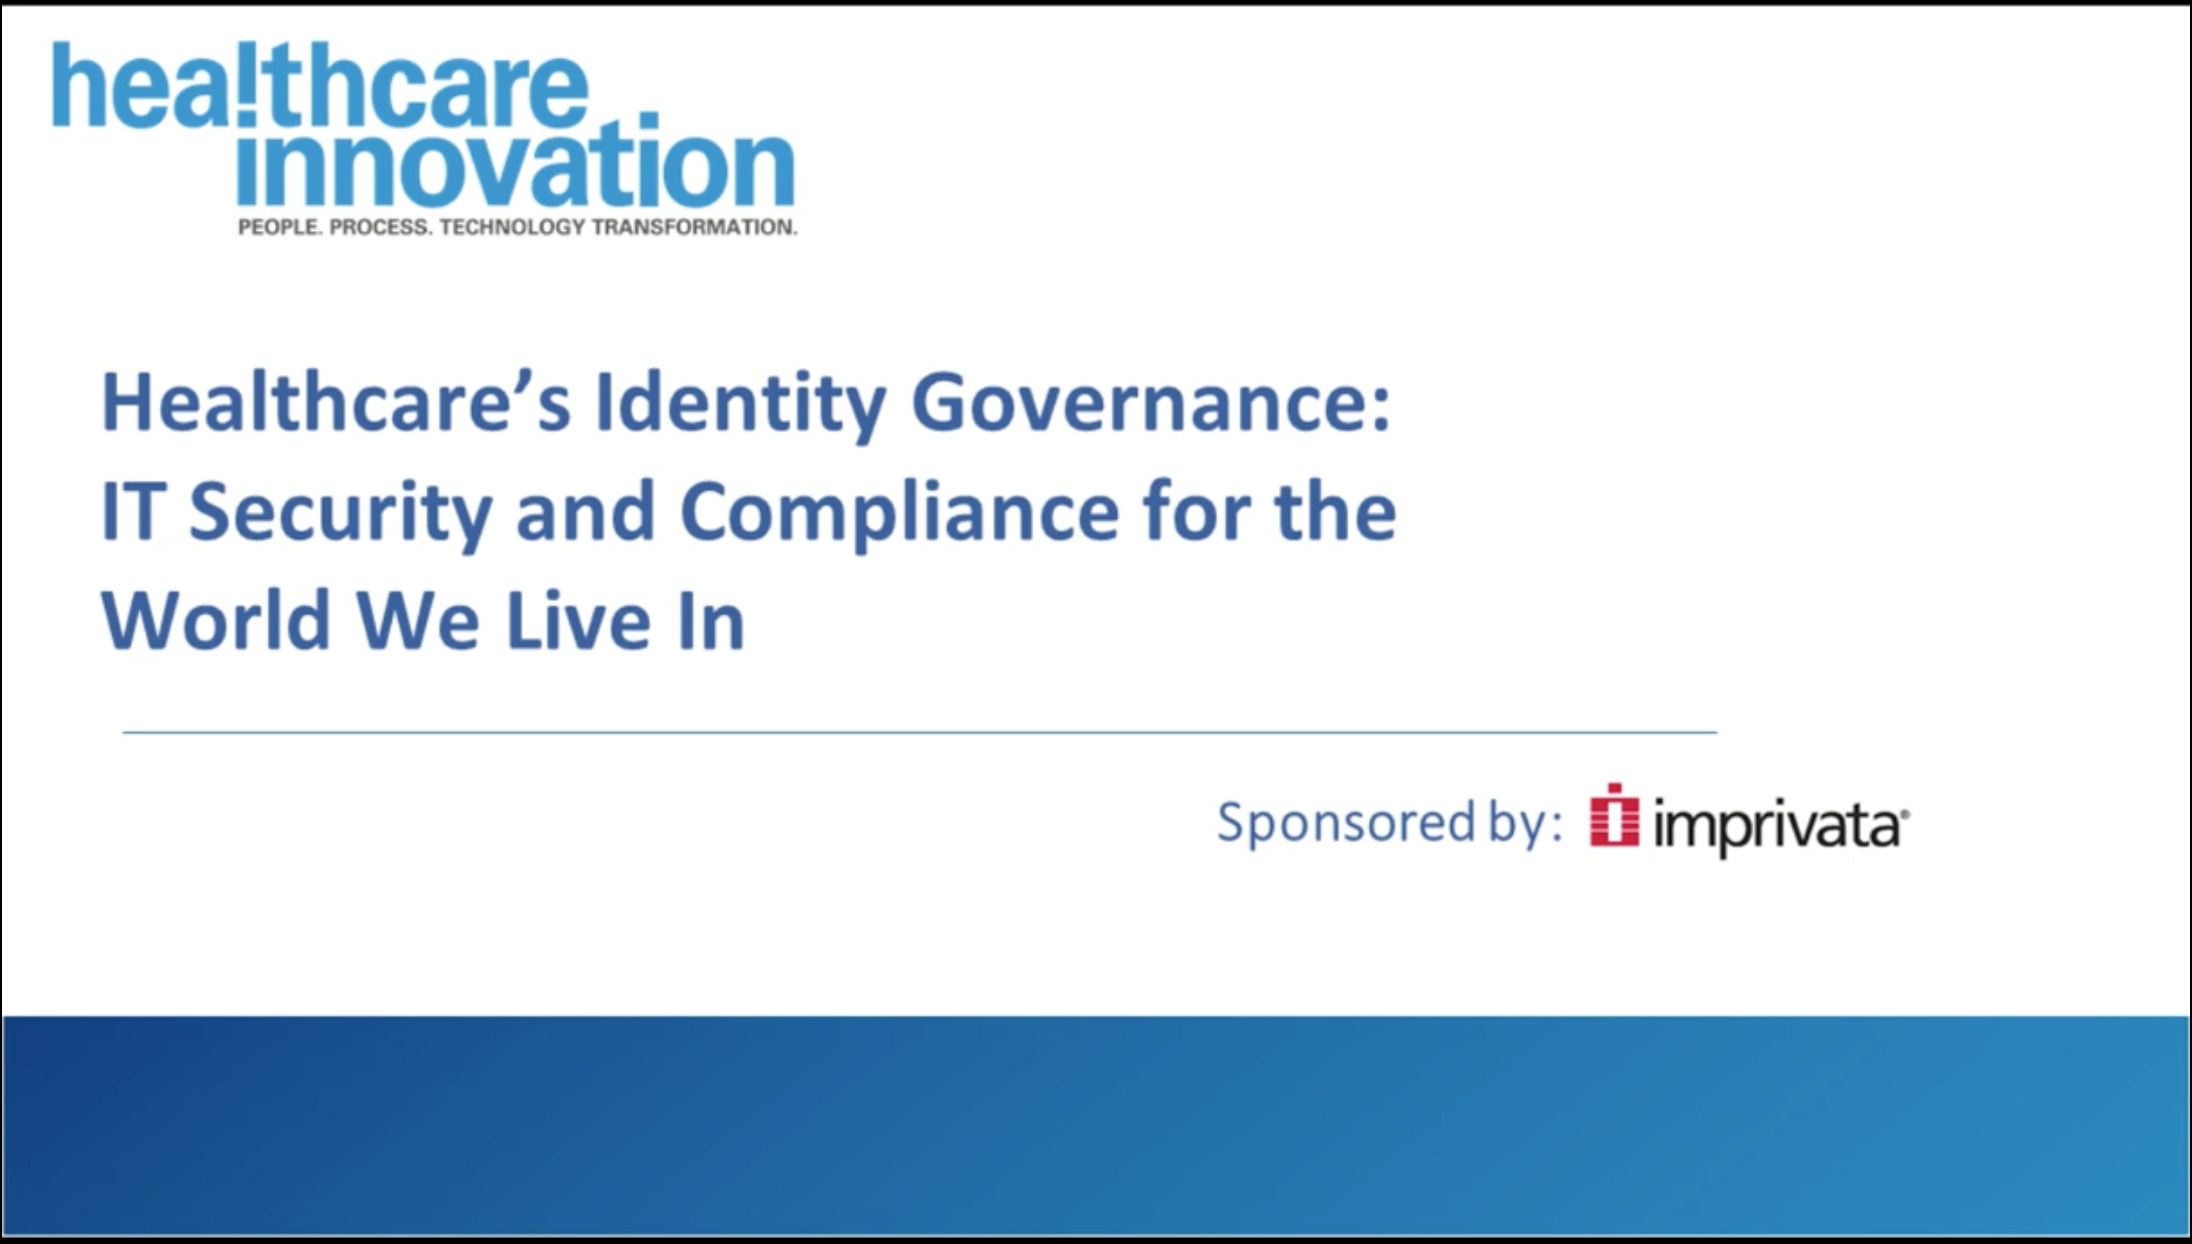 Healthcare's Identity Governance: IT Security and Compliance for the World We Live in